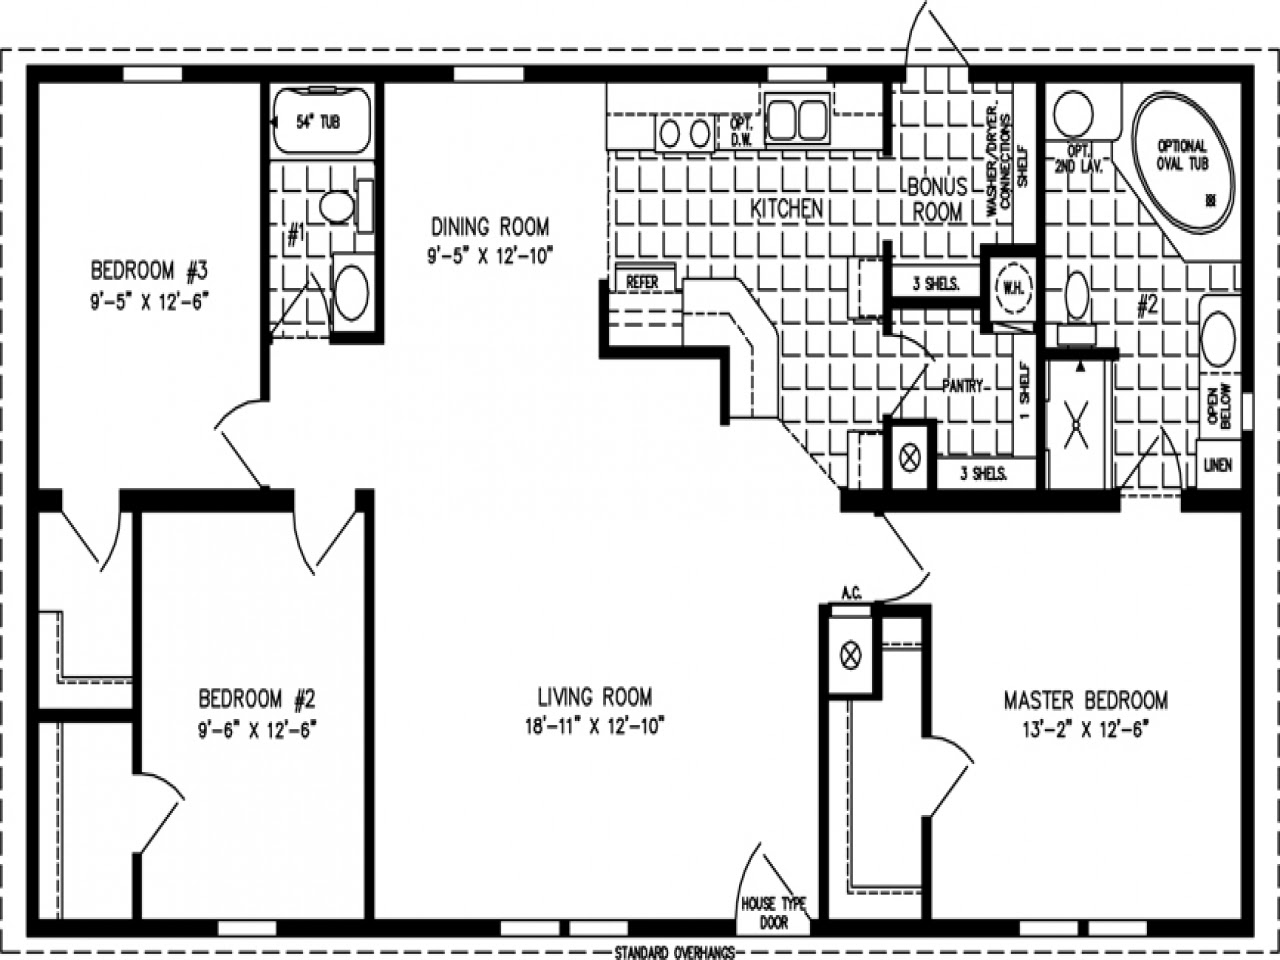 1200 Sq FT Home Floor Plans 4000 Sq FT Homes house plans